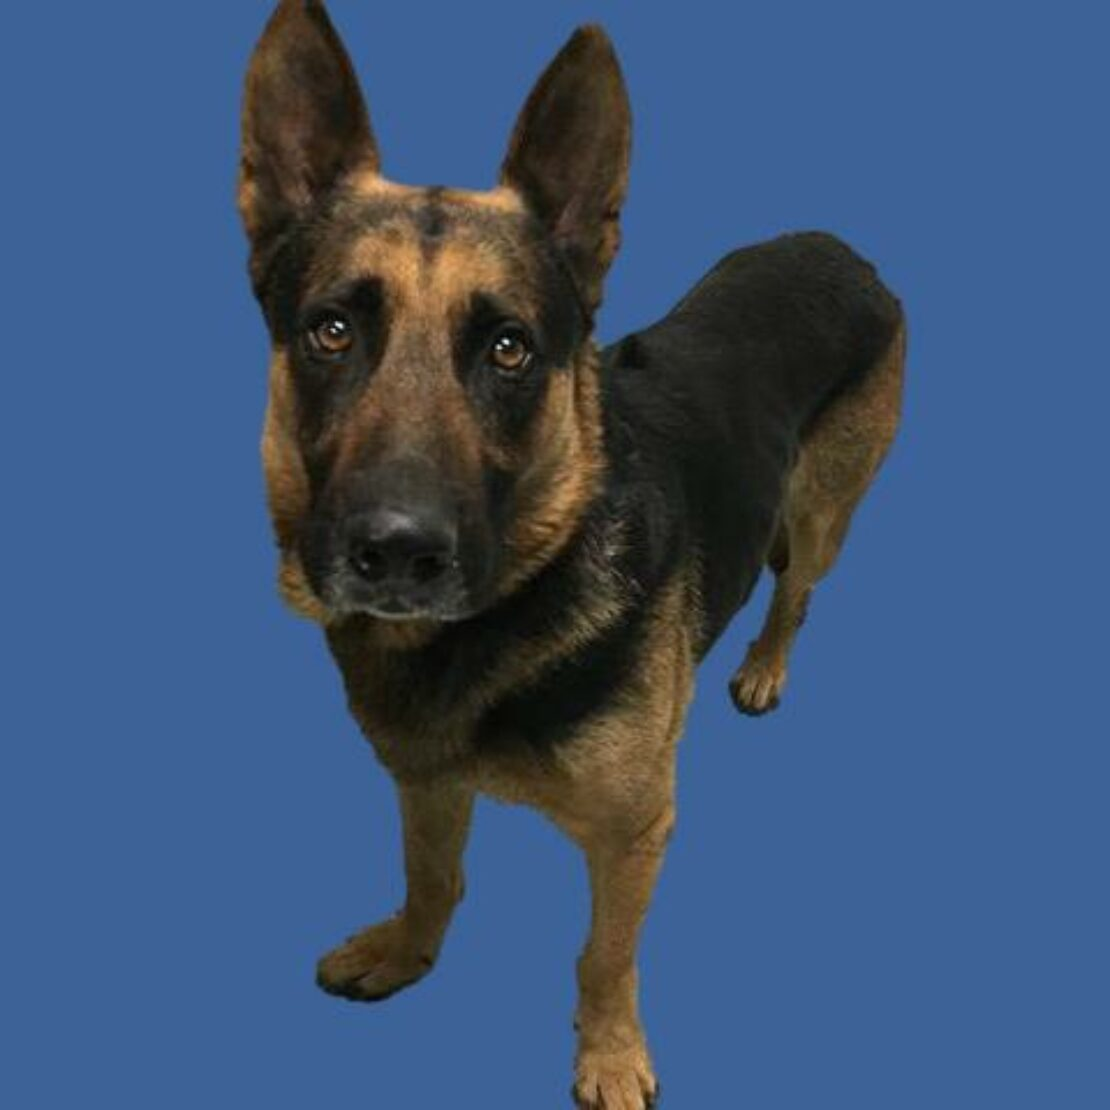 German shepherd with black ears, muzzle and back and with tan legs and face stands against a blue background.